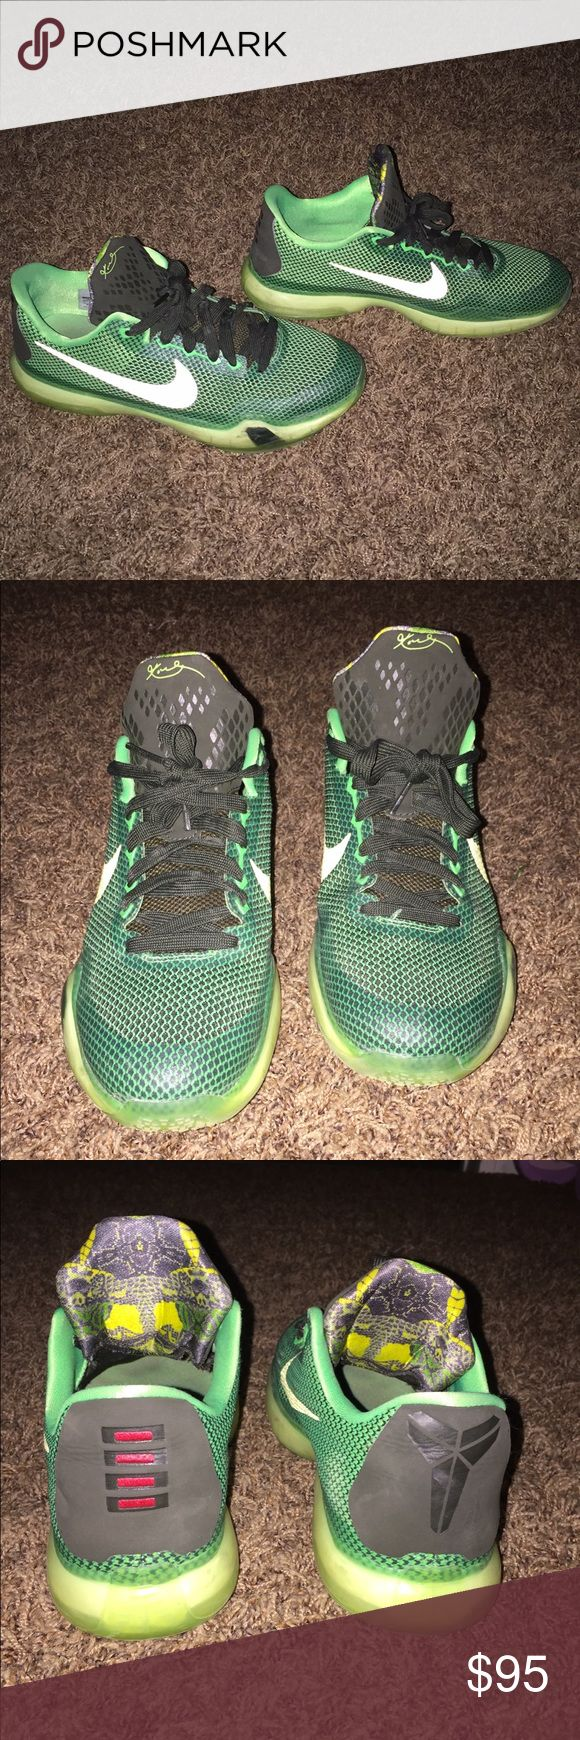 selling these because they got too small... wore these a few times in my basketball games last year they are in great condition and have never been worn outside only on the basketball court. Nike Shoes Sneakers